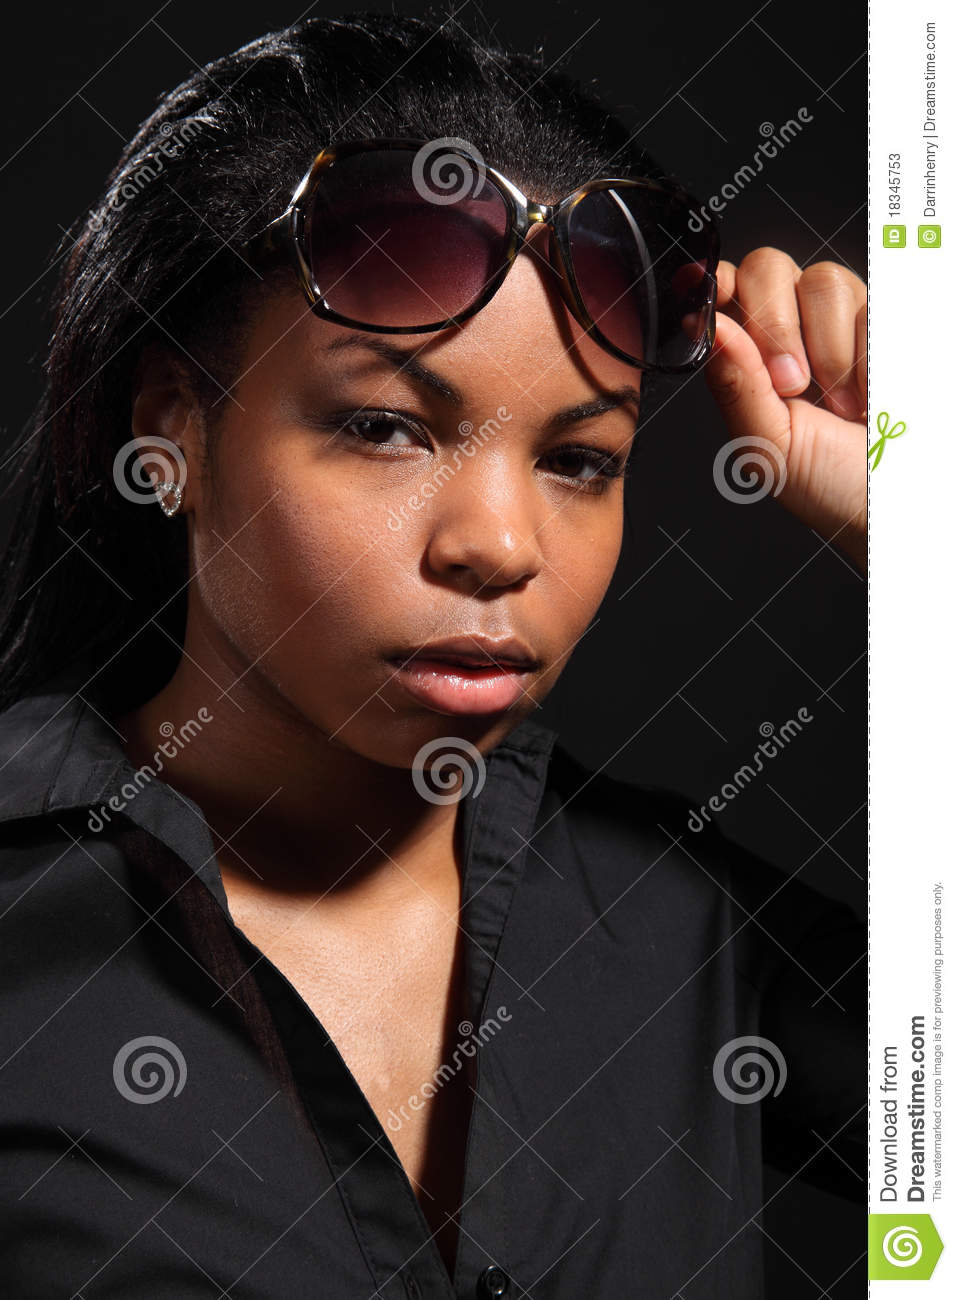 Young girl with attitude wearing sunglasses